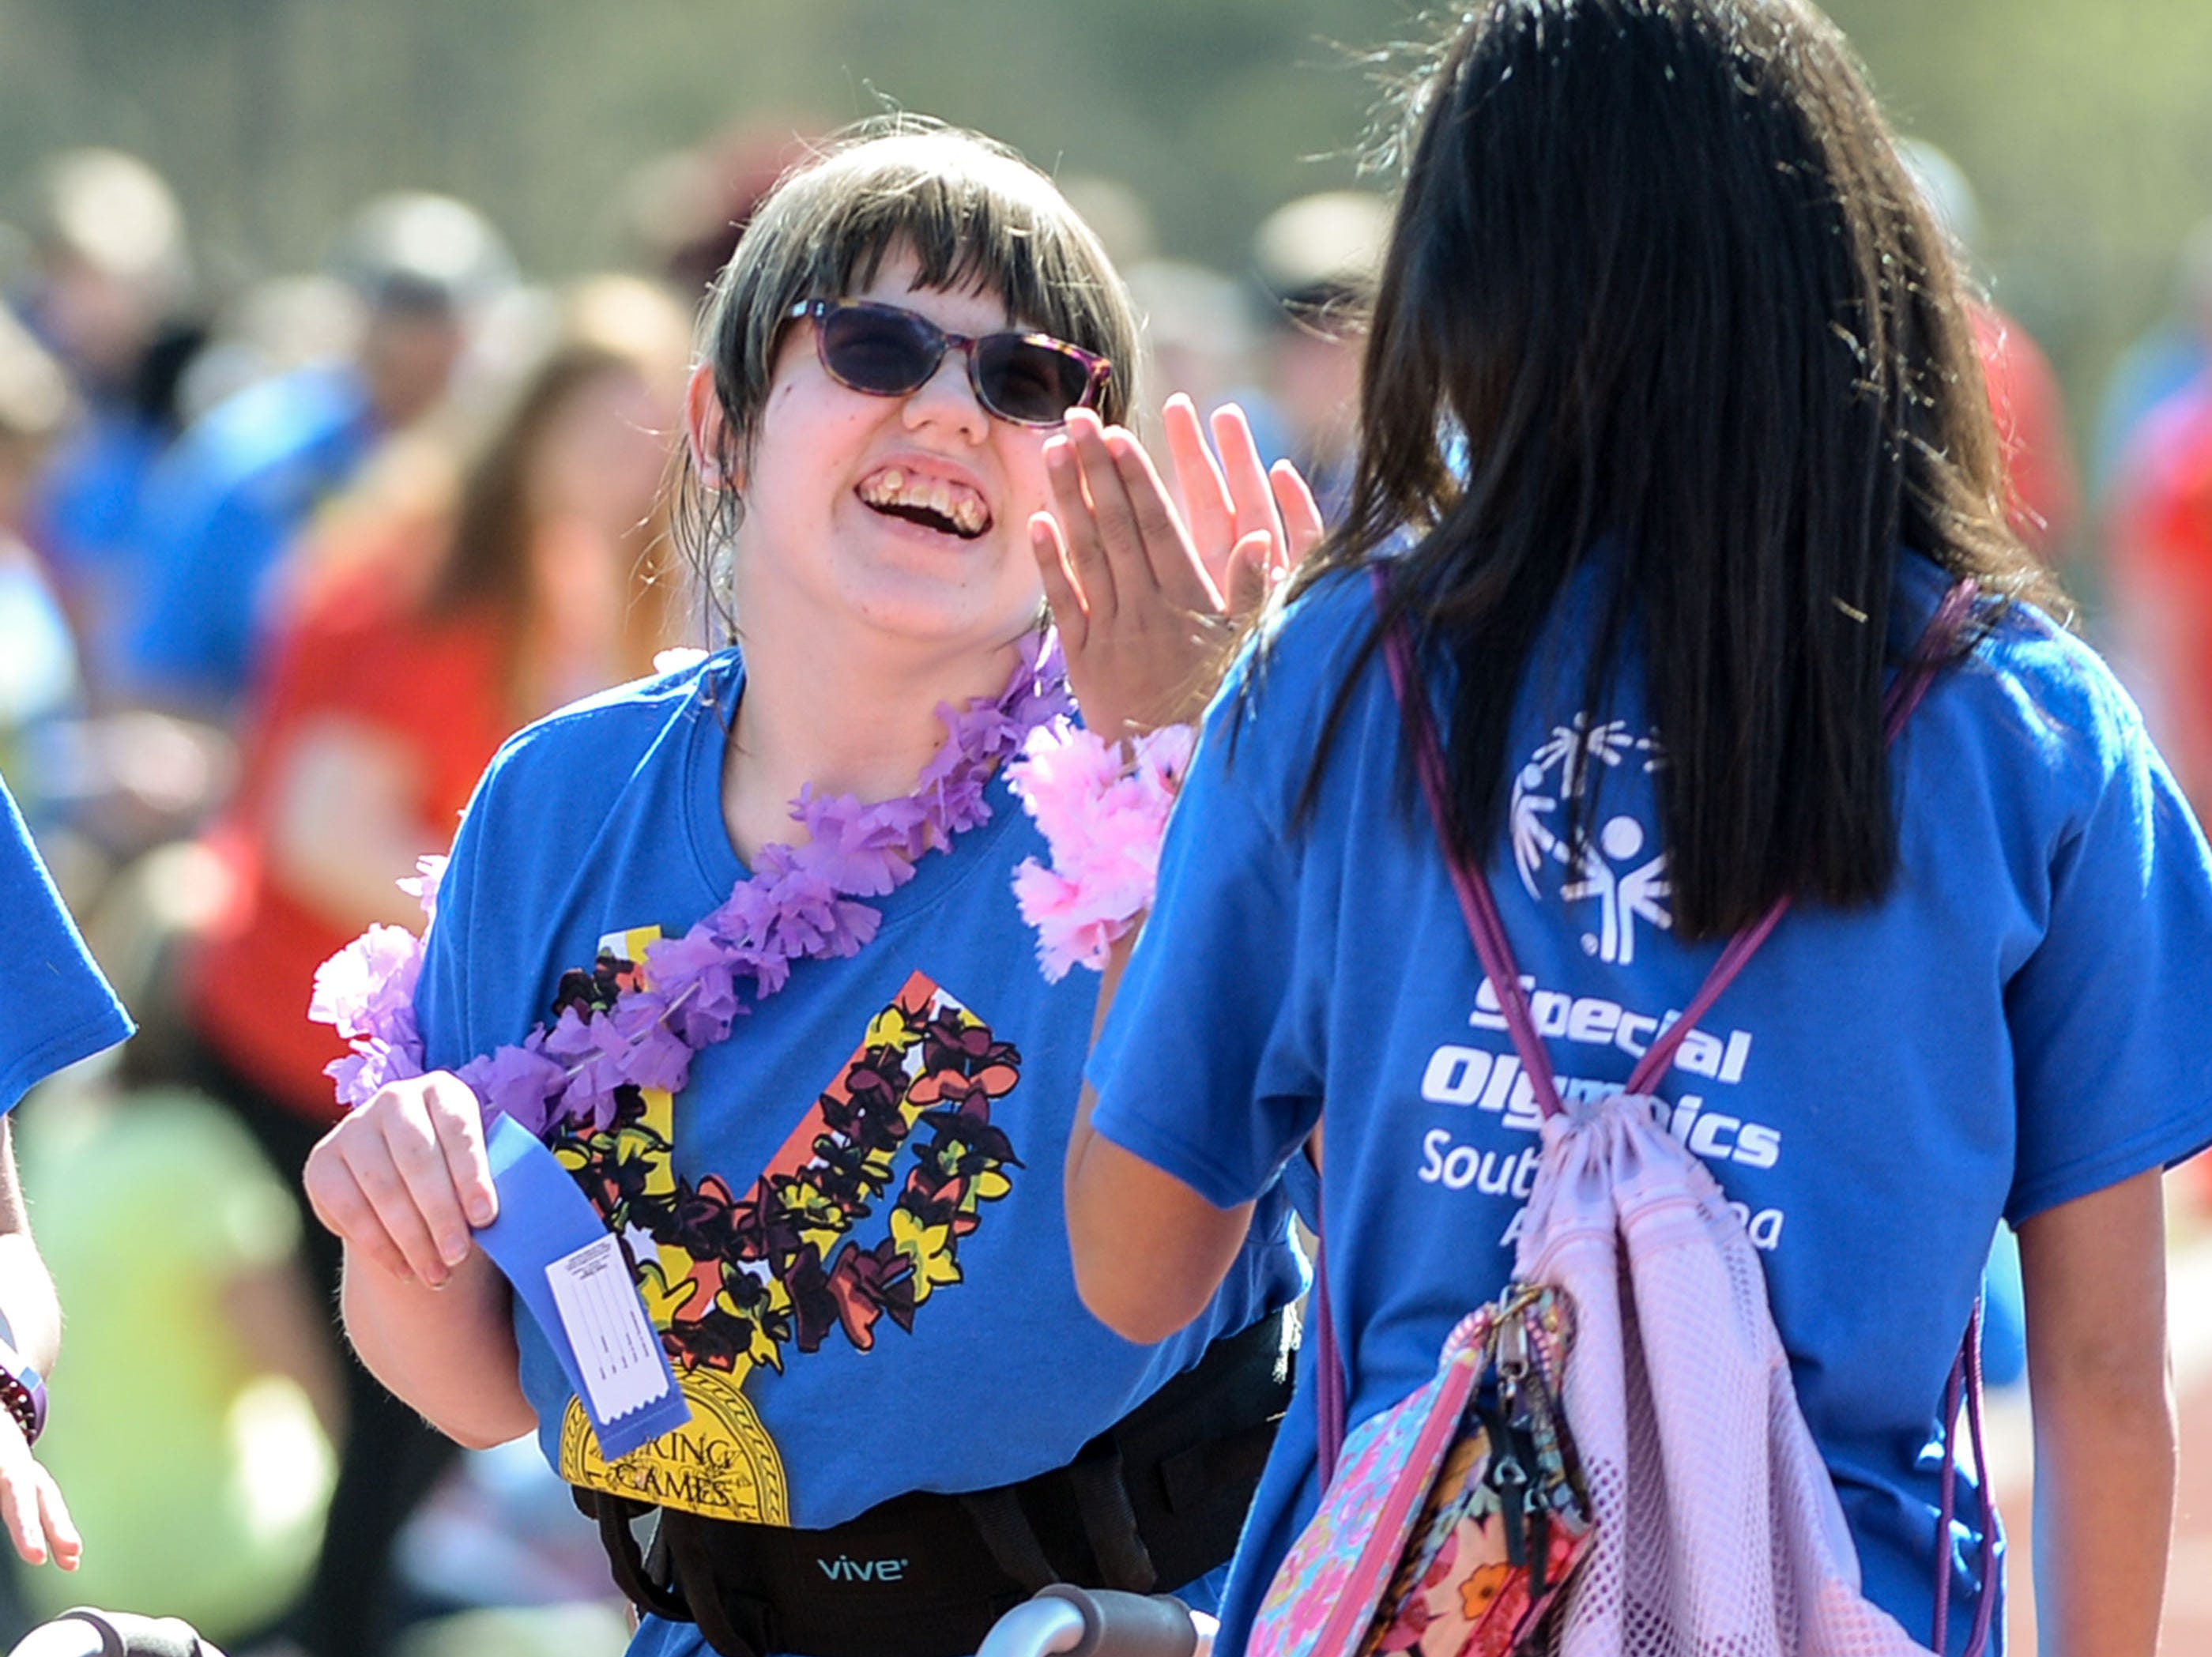 Volunteer Rachel Barth, right, of Palmetto Middle School, gets a high-dive from athlete Hollie Woodson after she won a blue ribbo in a 50 yard walk during the Special Olympics South Carolina Area 14 Spring Games at Marlee Gambrell field at Belton-Honea Path High School Wednesday.